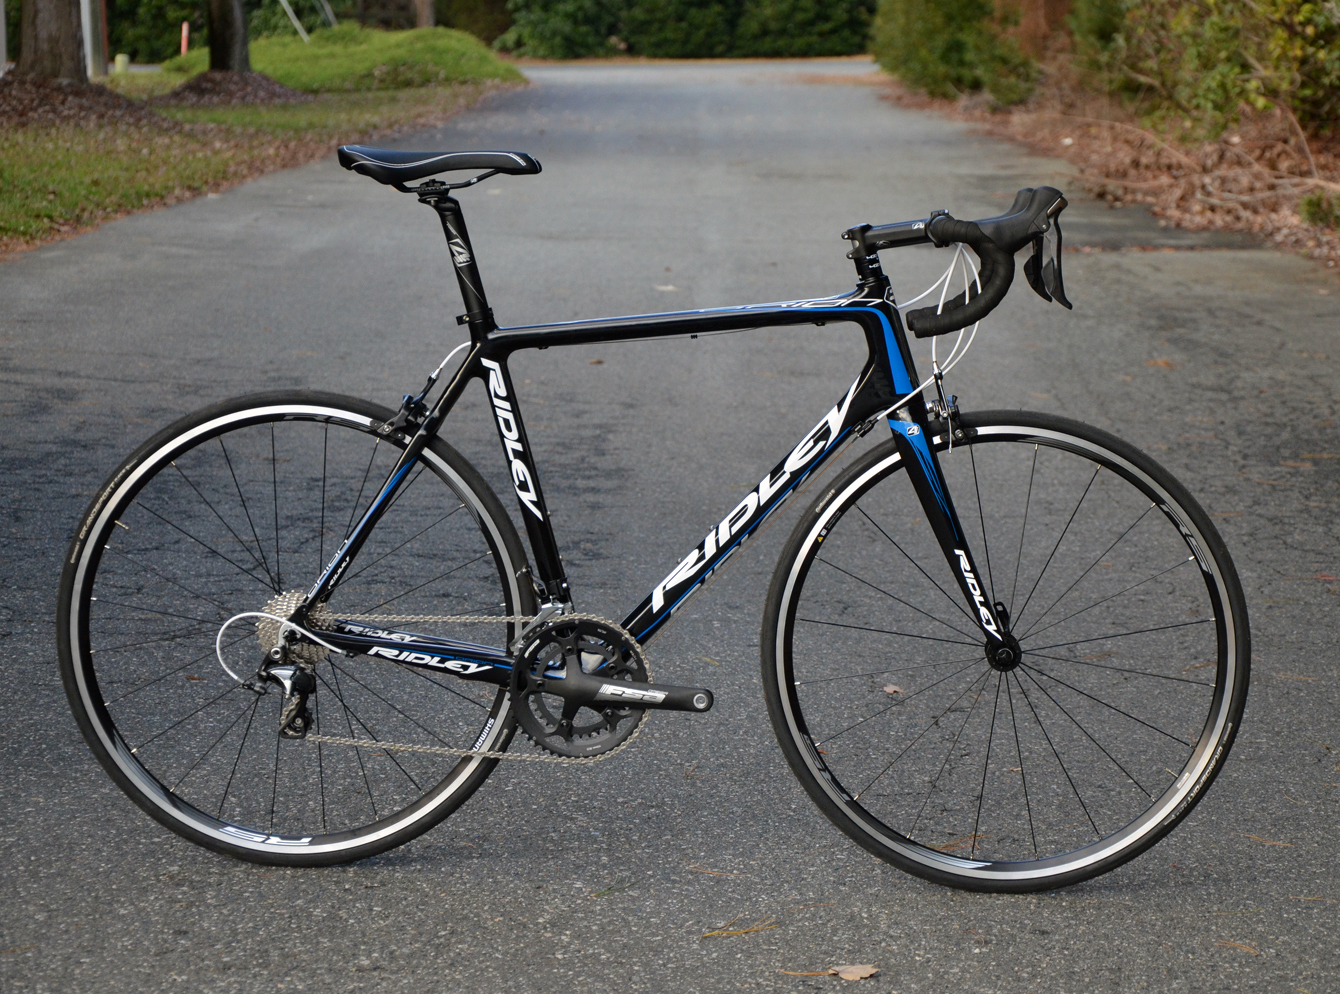 83b6c0860e2 2015 Exclusive Bike Preview – Performance Bicycle Blog